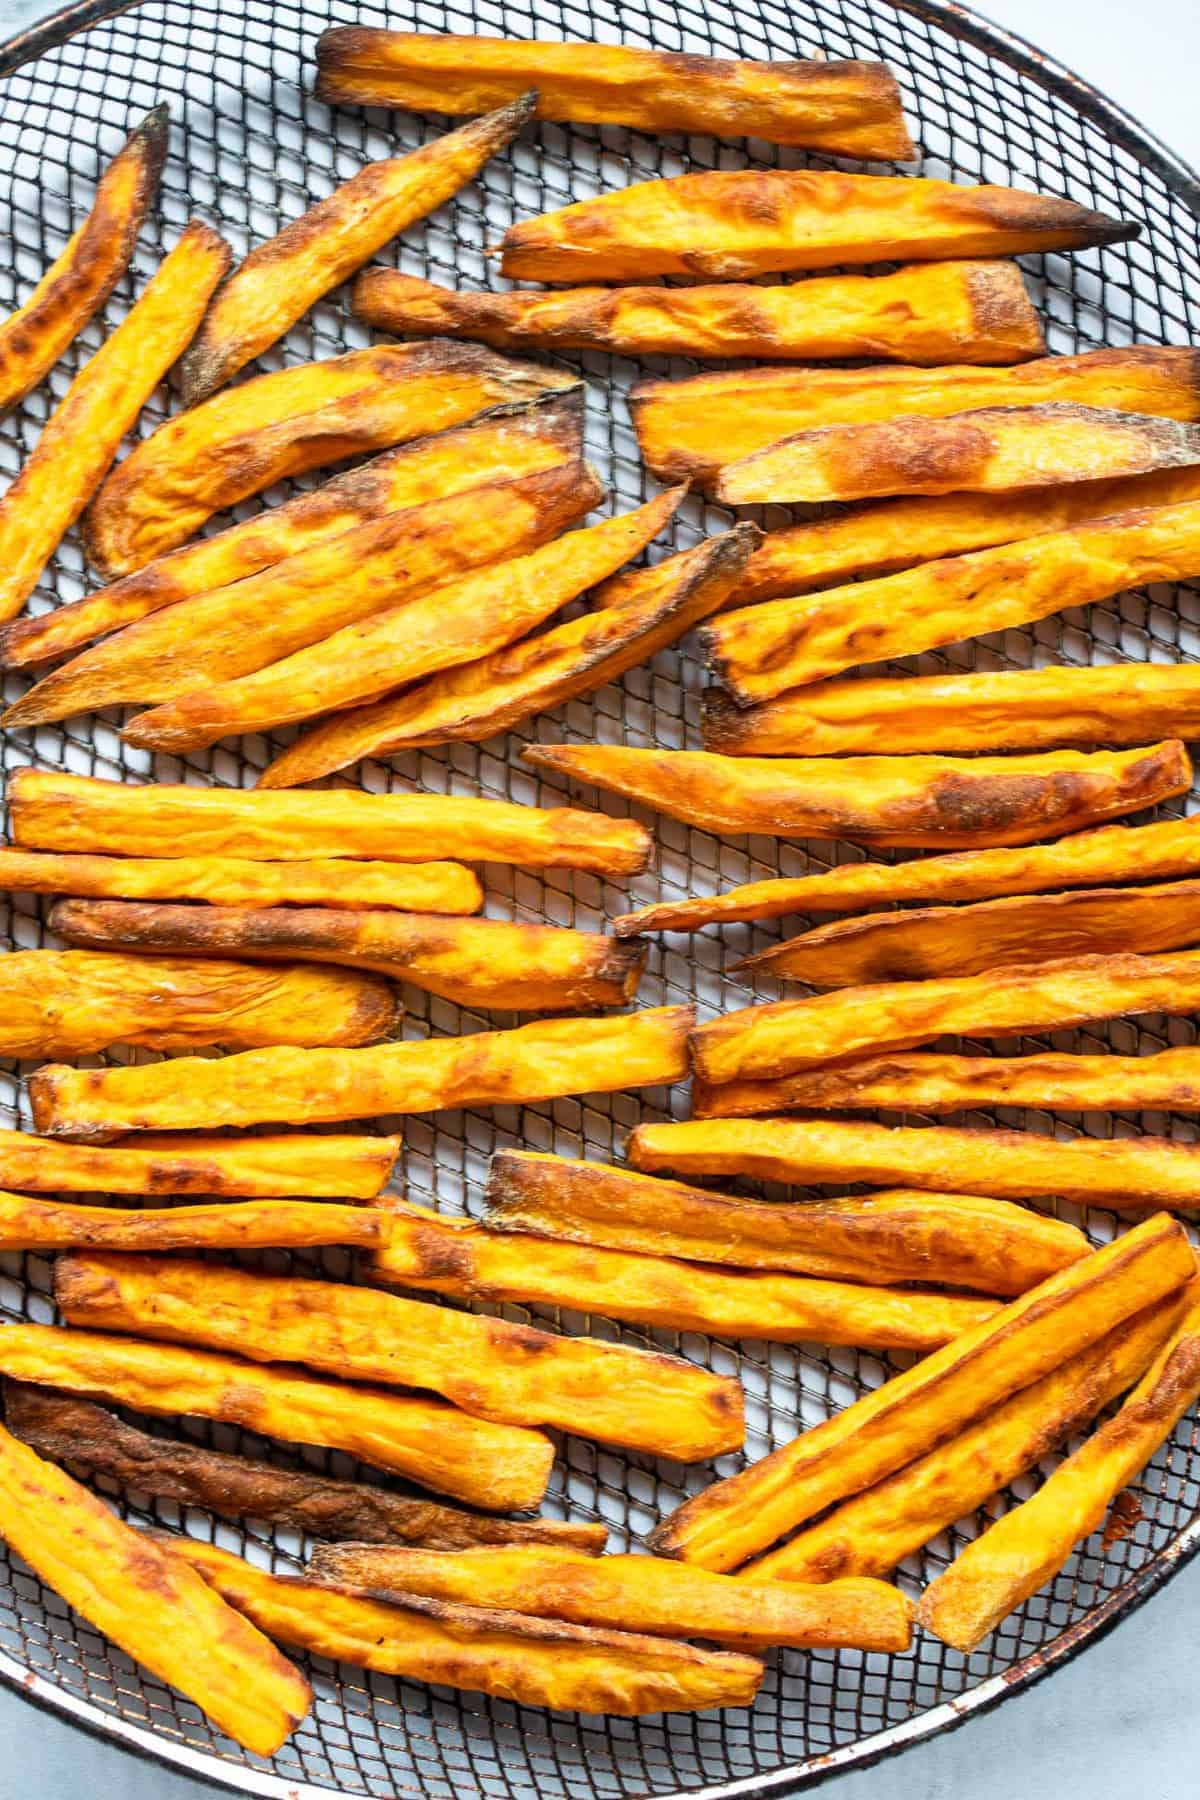 air fried sweet potato fries on a mesh basket